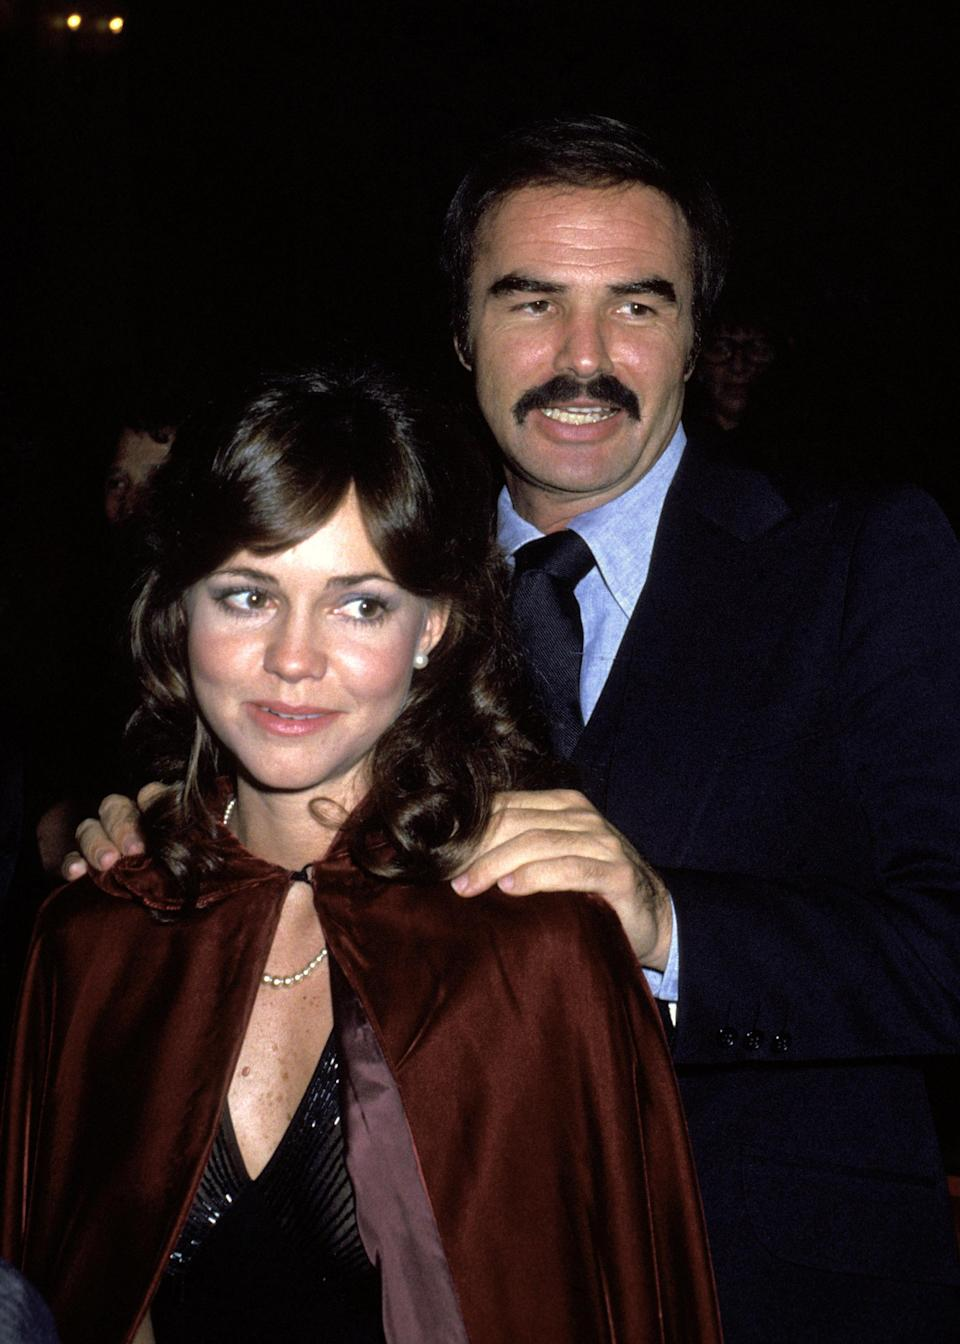 Sally Field and Burt Reynolds in a photo dated Nov. 5, 1977. (Photo: Ron Galella/WireImage)